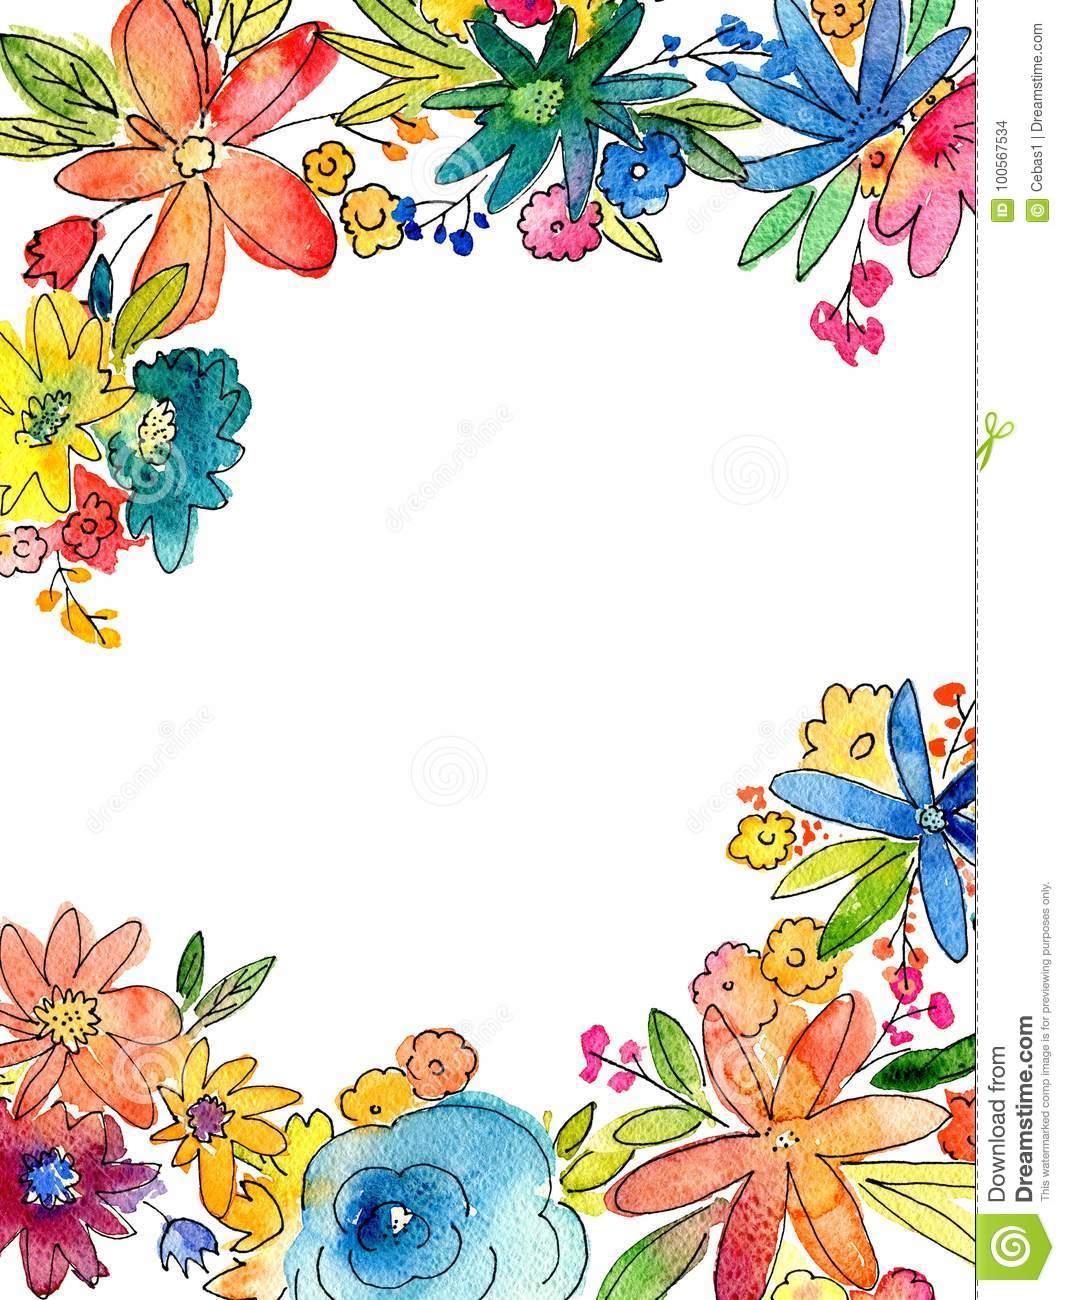 Watercolor flower frame illustration with blank copy space